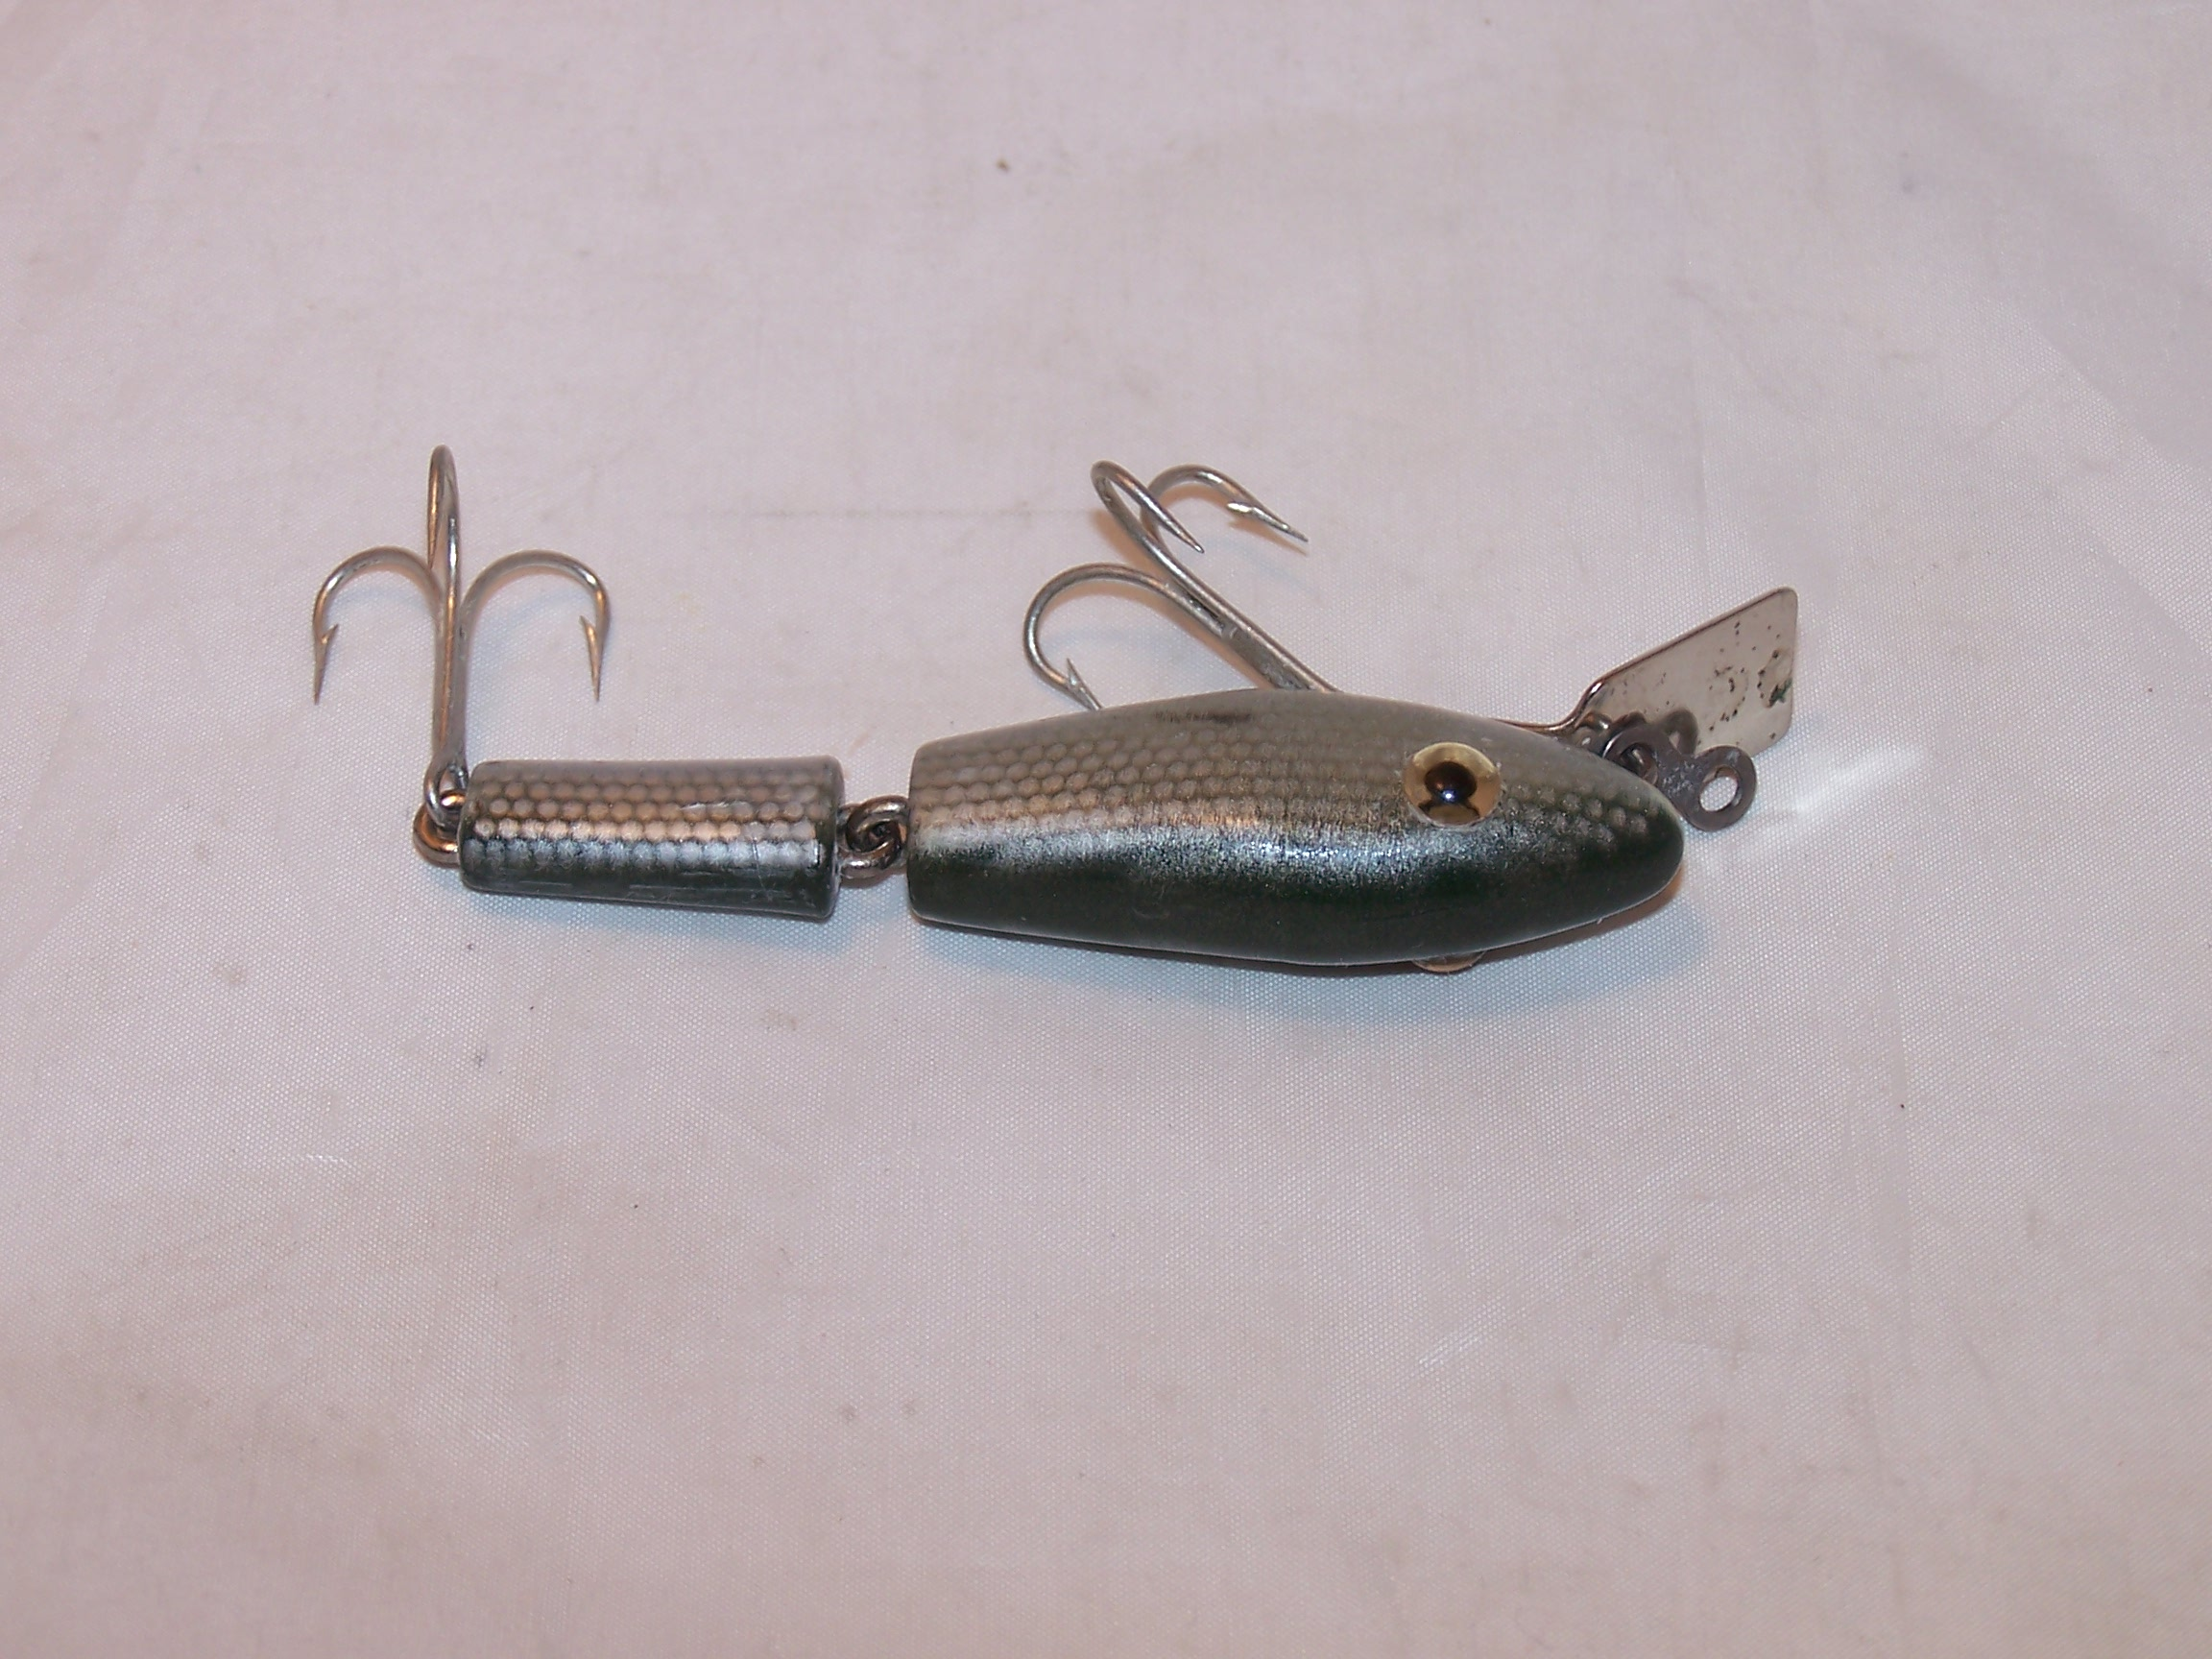 Image 2 of LS Fishing Lure, 15M18, Vintage MirrOLure w Box